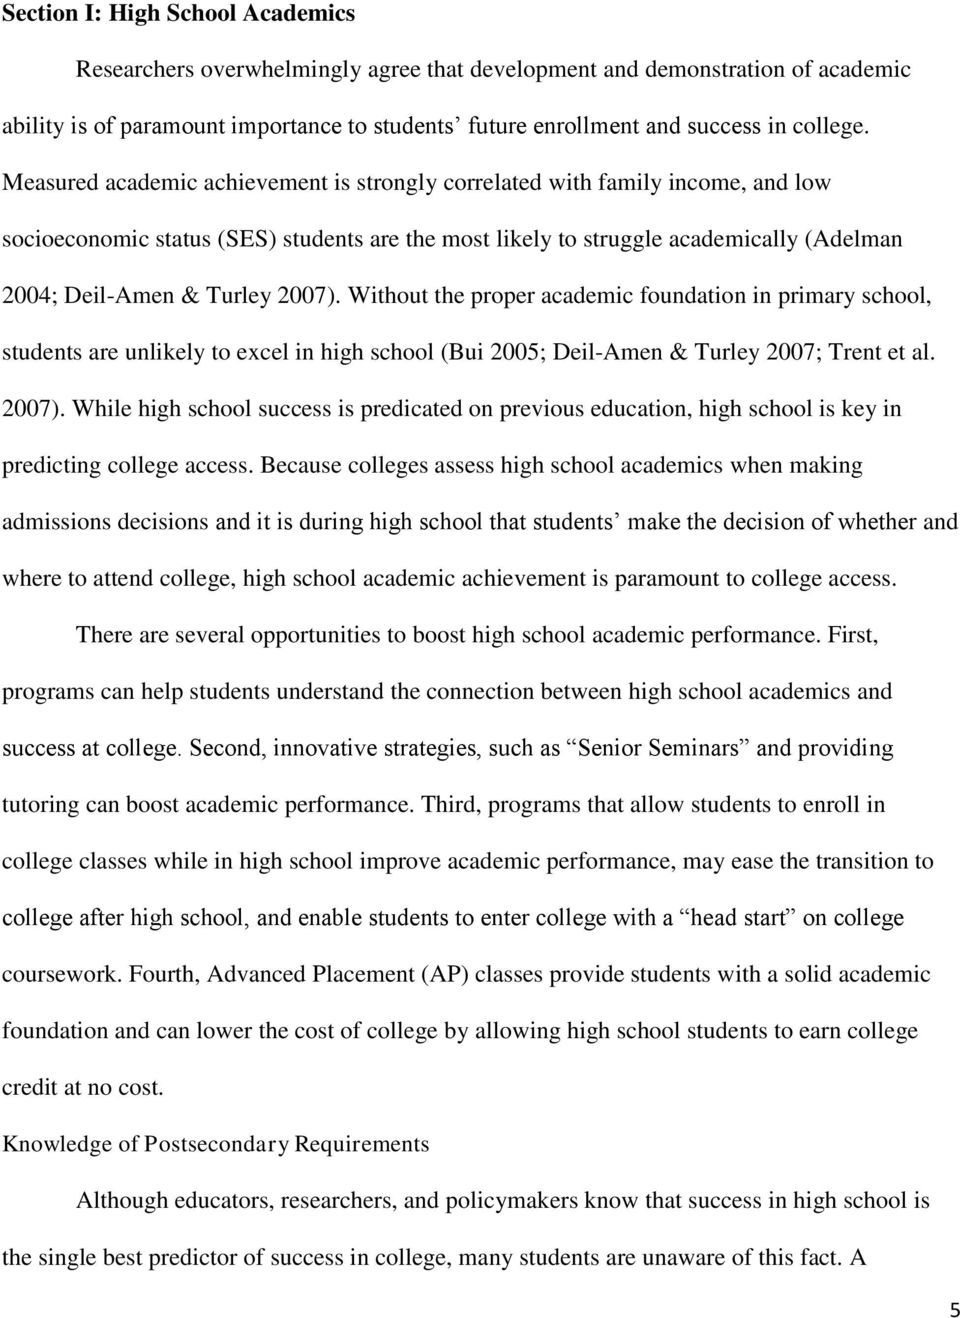 Measured academic achievement is strongly correlated with family income, and low socioeconomic status (SES) students are the most likely to struggle academically (Adelman 2004; Deil-Amen & Turley